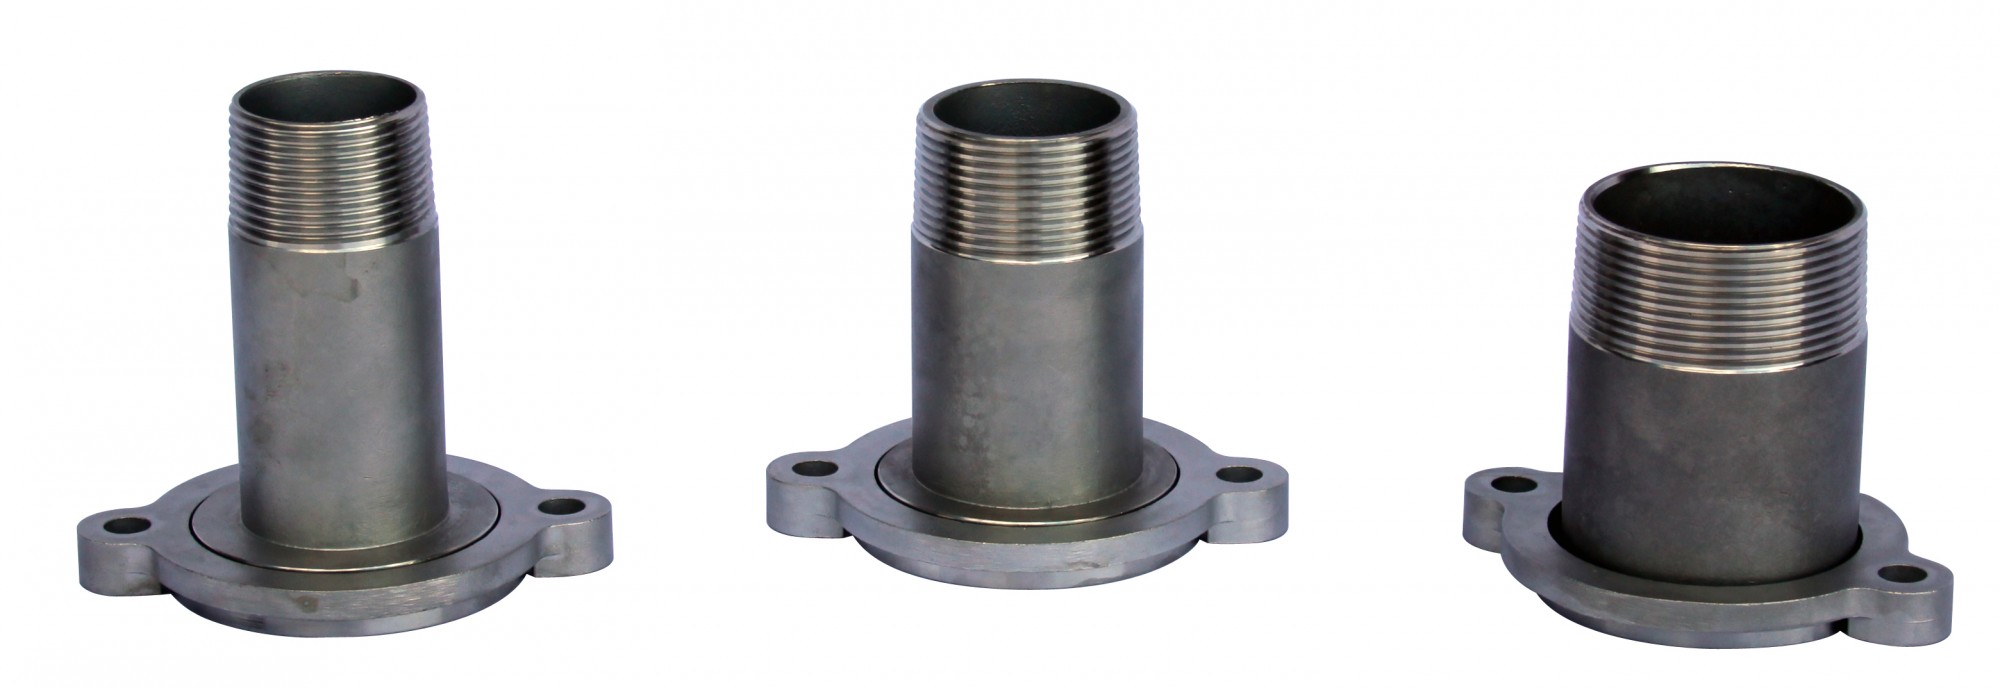 Stainless Steel Pump Adapter